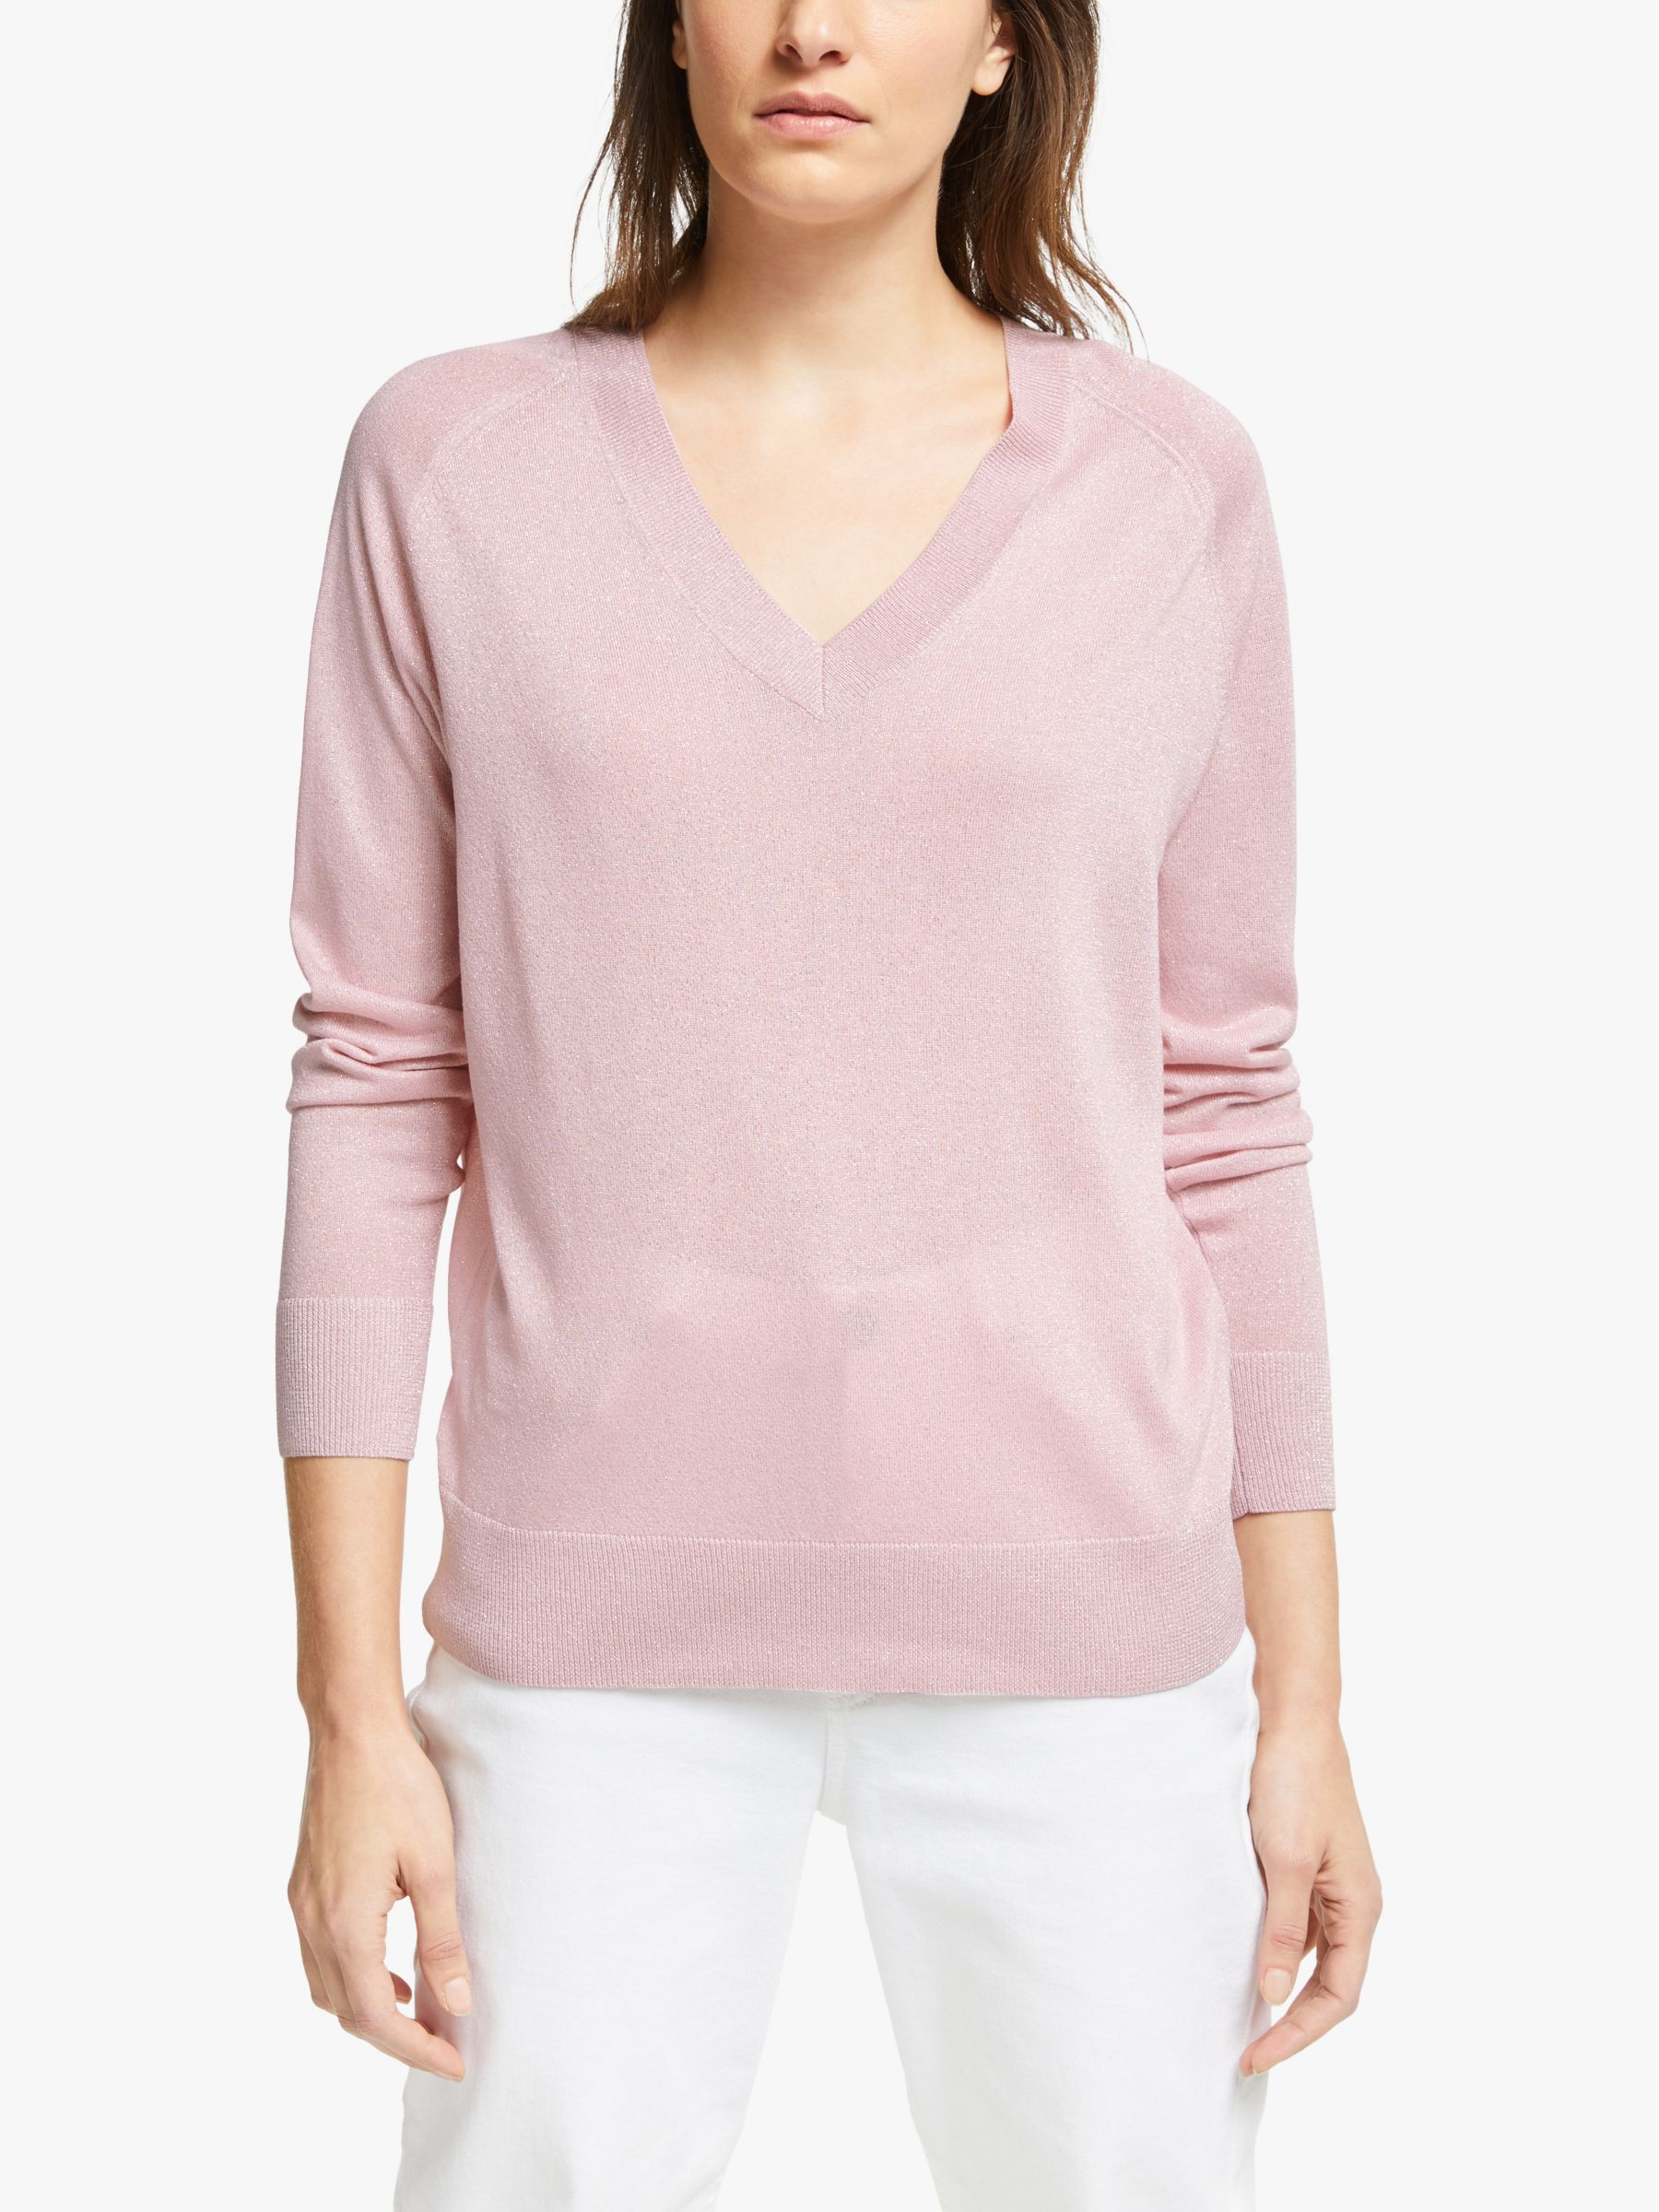 Jeff JEFF Ellen Metallic Jumper, Pink